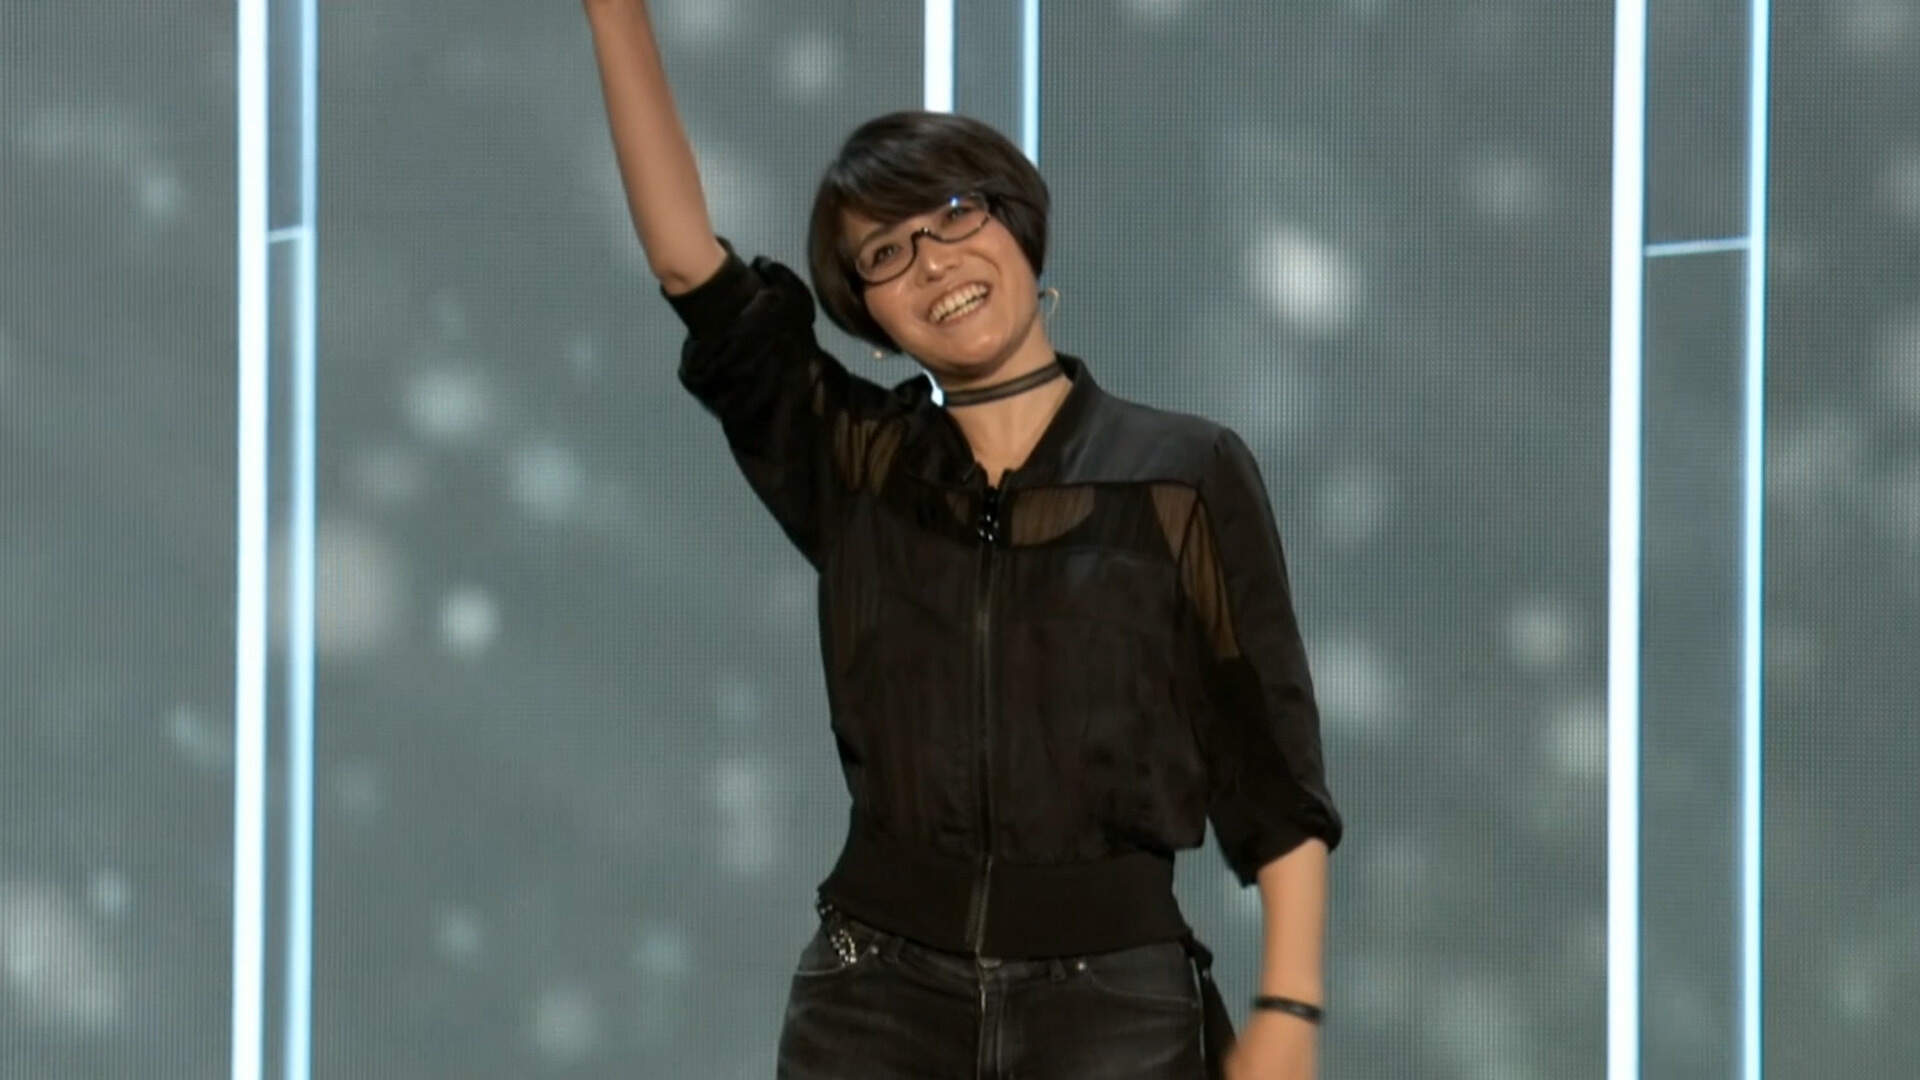 Ikumi Nakamura Stole the Show Once Again, This Time at the Game Awards